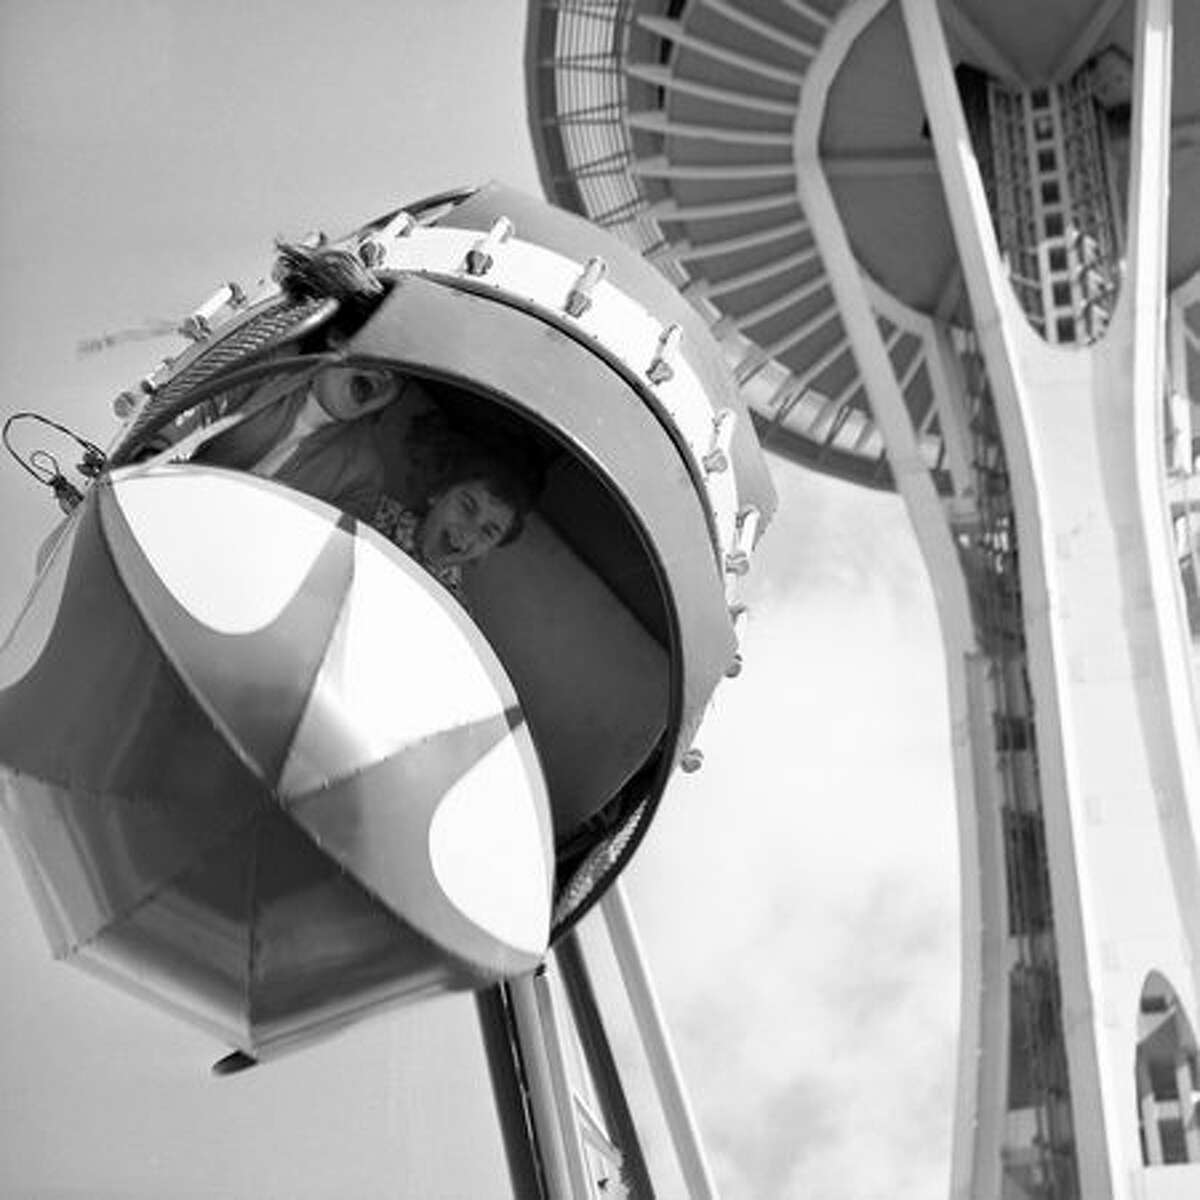 The Seattle Center's Fun Forest, which was initially formed as the Gayway entertainment area for the 1962 World's Fair, added major rides in 1964 to what had been primarily an assortment of carnival games. In this spring 1965 photo, Mary Anne Norton, age 13, and Kristy Davis, 12, enjoy the Rolo Plane. (Seattlepi.com file/MOHAI collection)